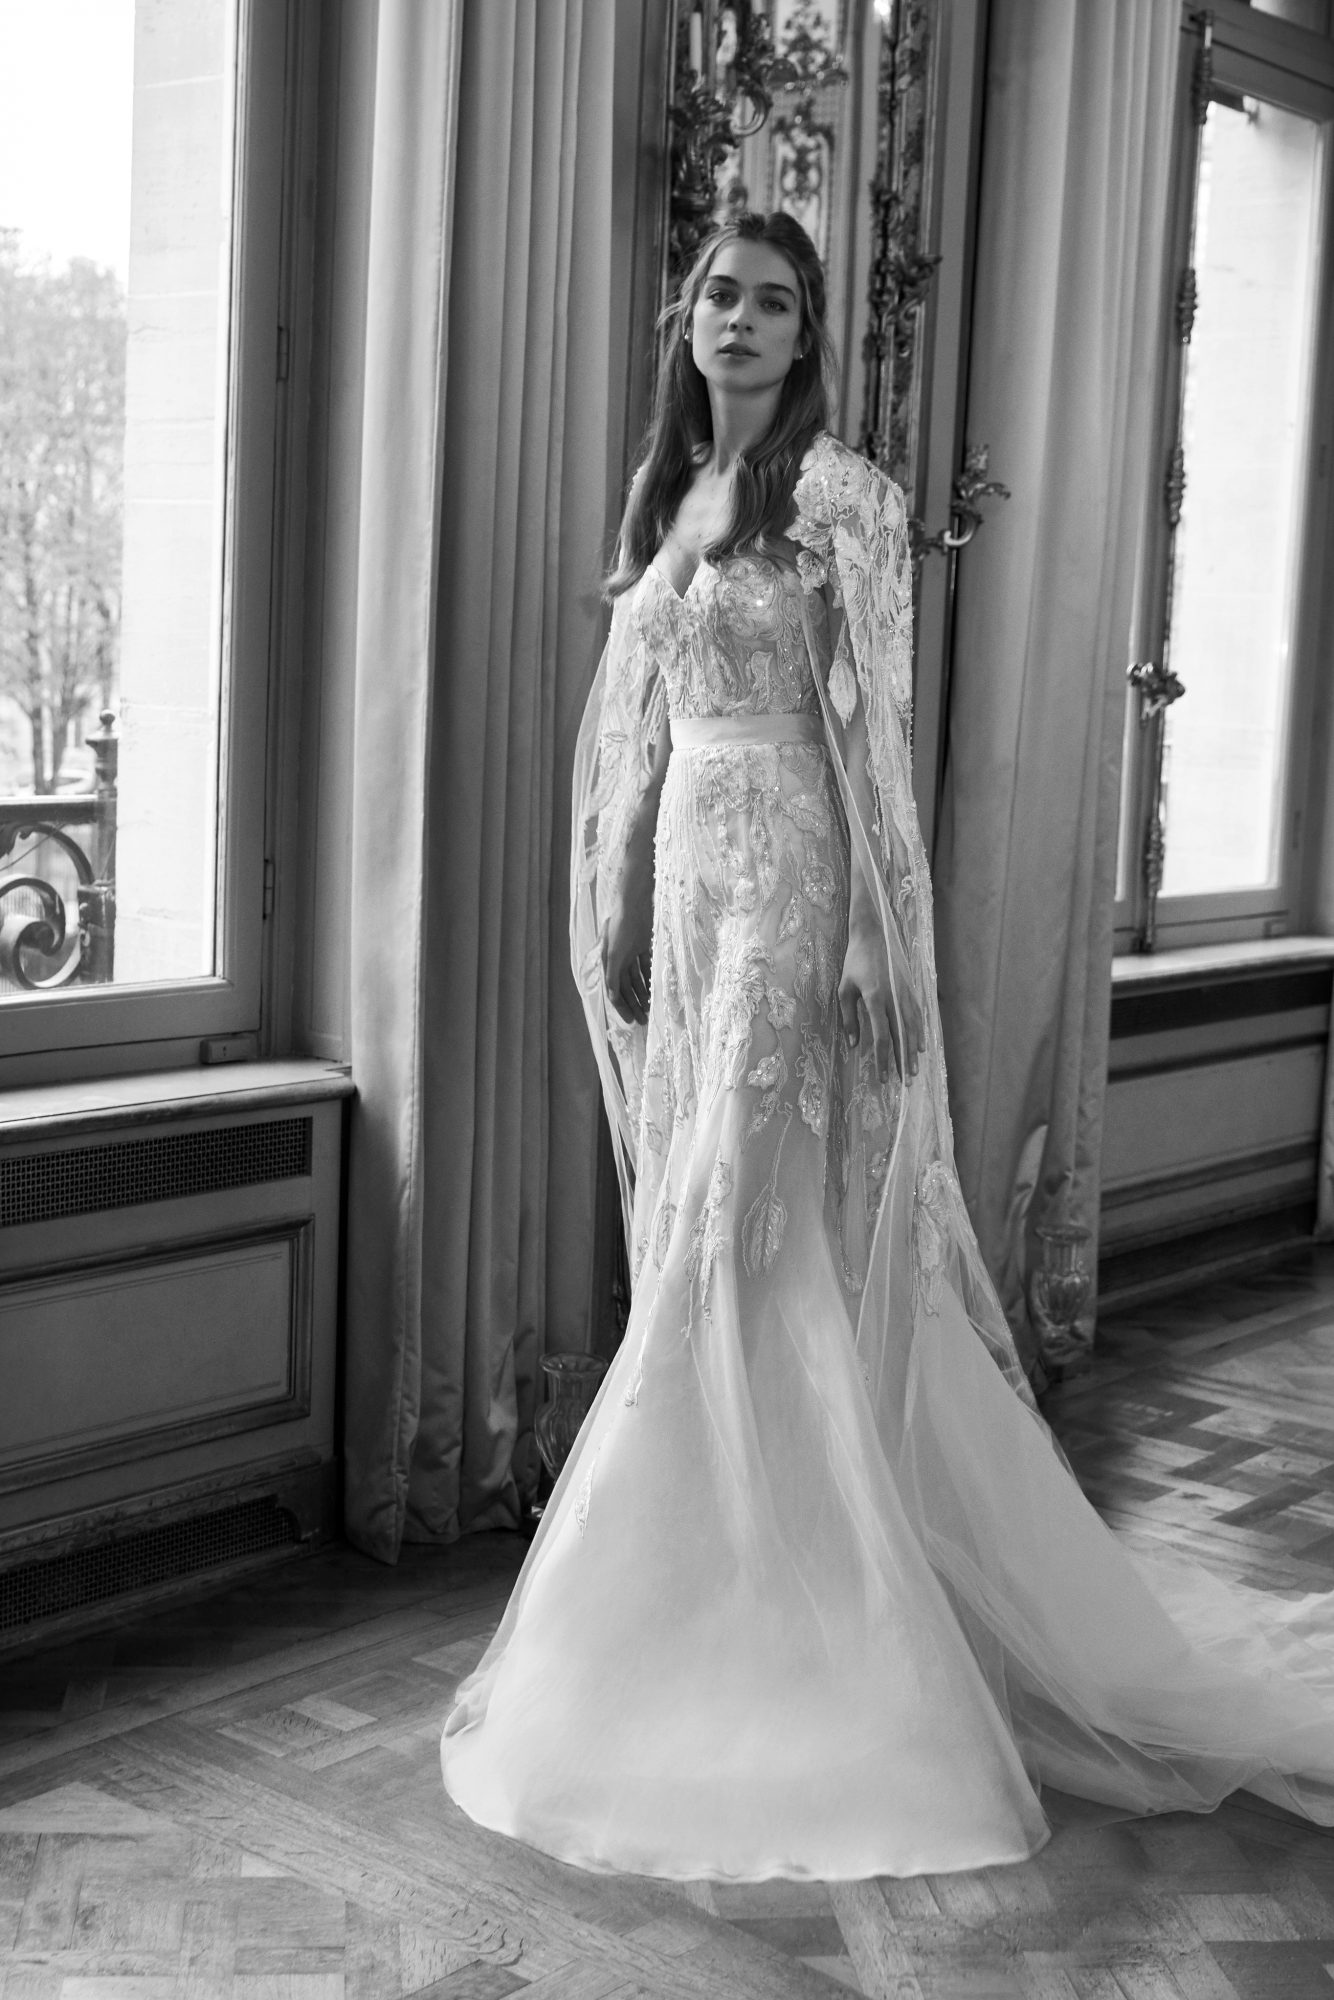 Strapless mermaid wedding dress with sweetheart neckline, appliqués throughout, and cape